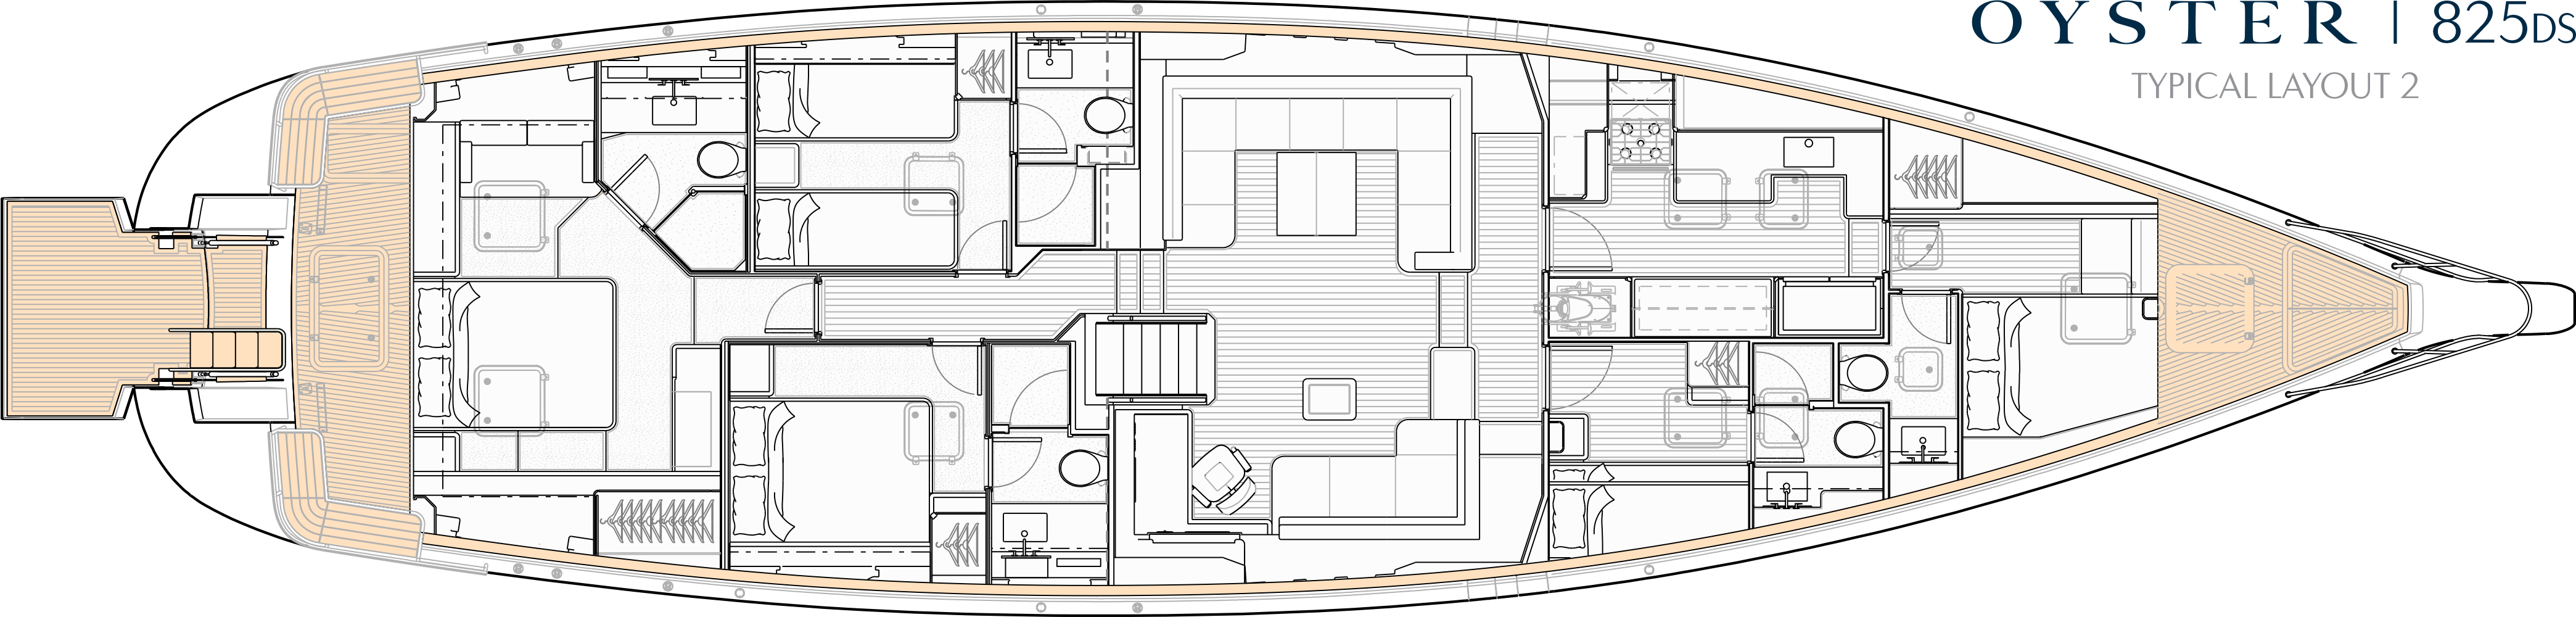 Oyster Marine 825 - oysteryachts-yachts-825_ds_typical_layout_2.jpg